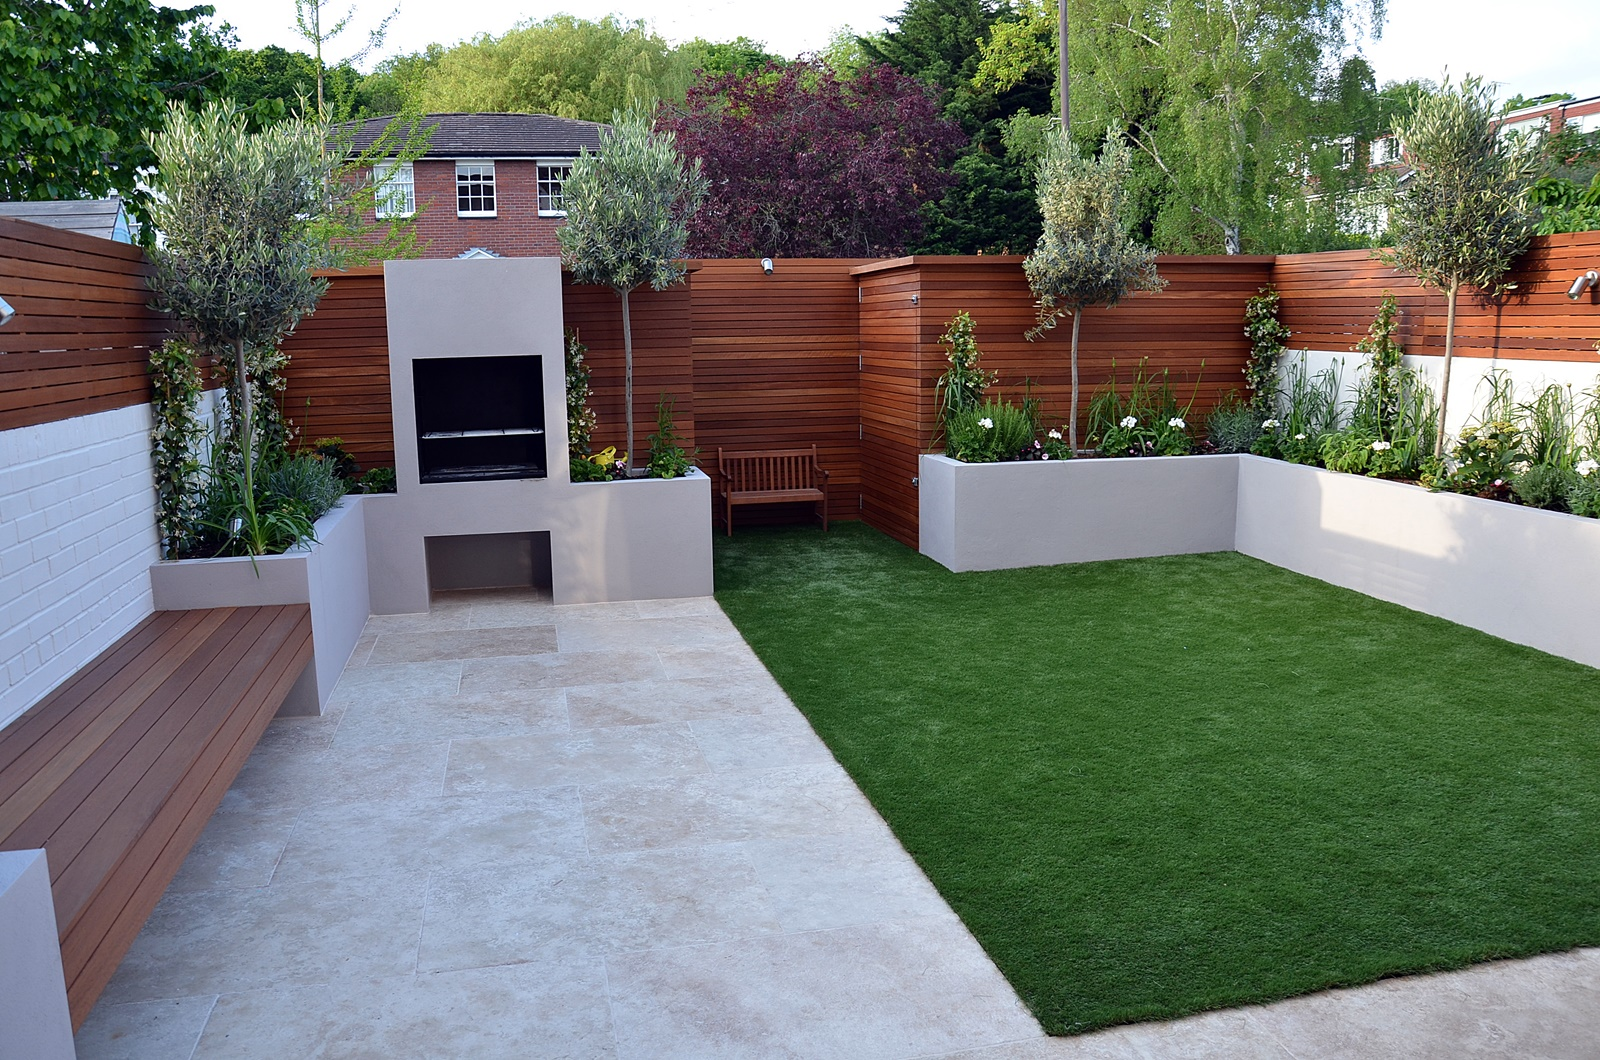 Modern garden design fulham chelsea clapham battersea for Small front garden designs uk